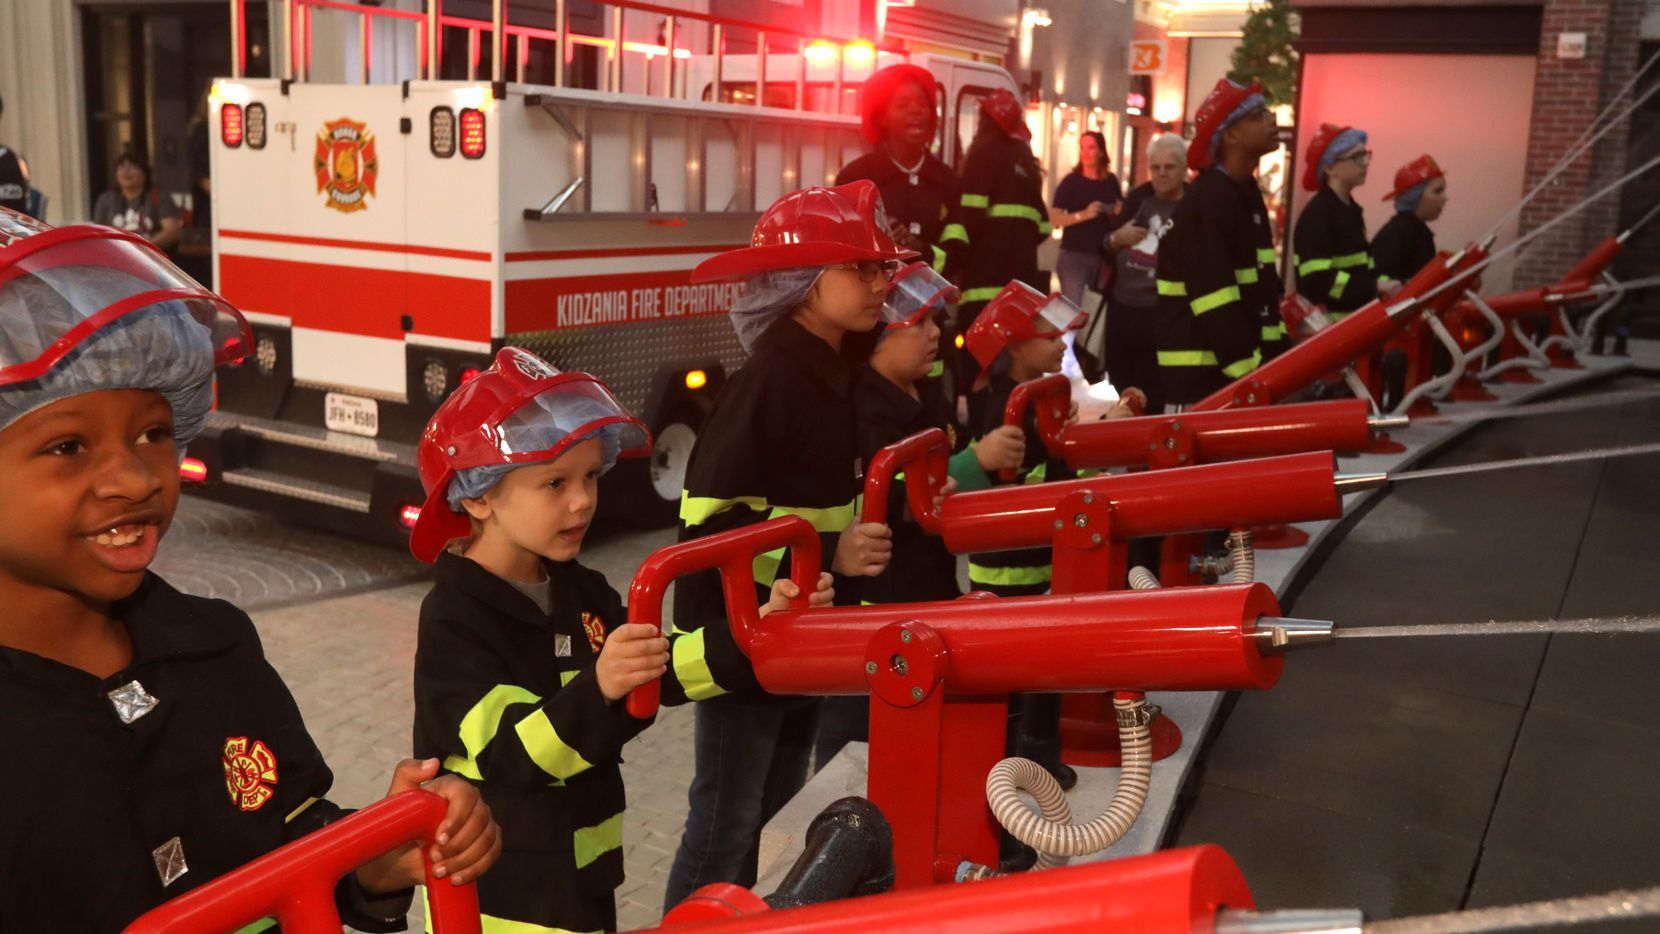 Children fight a fire at Stonebriar Centre's KidZania, an educational entertainment venue for kids.